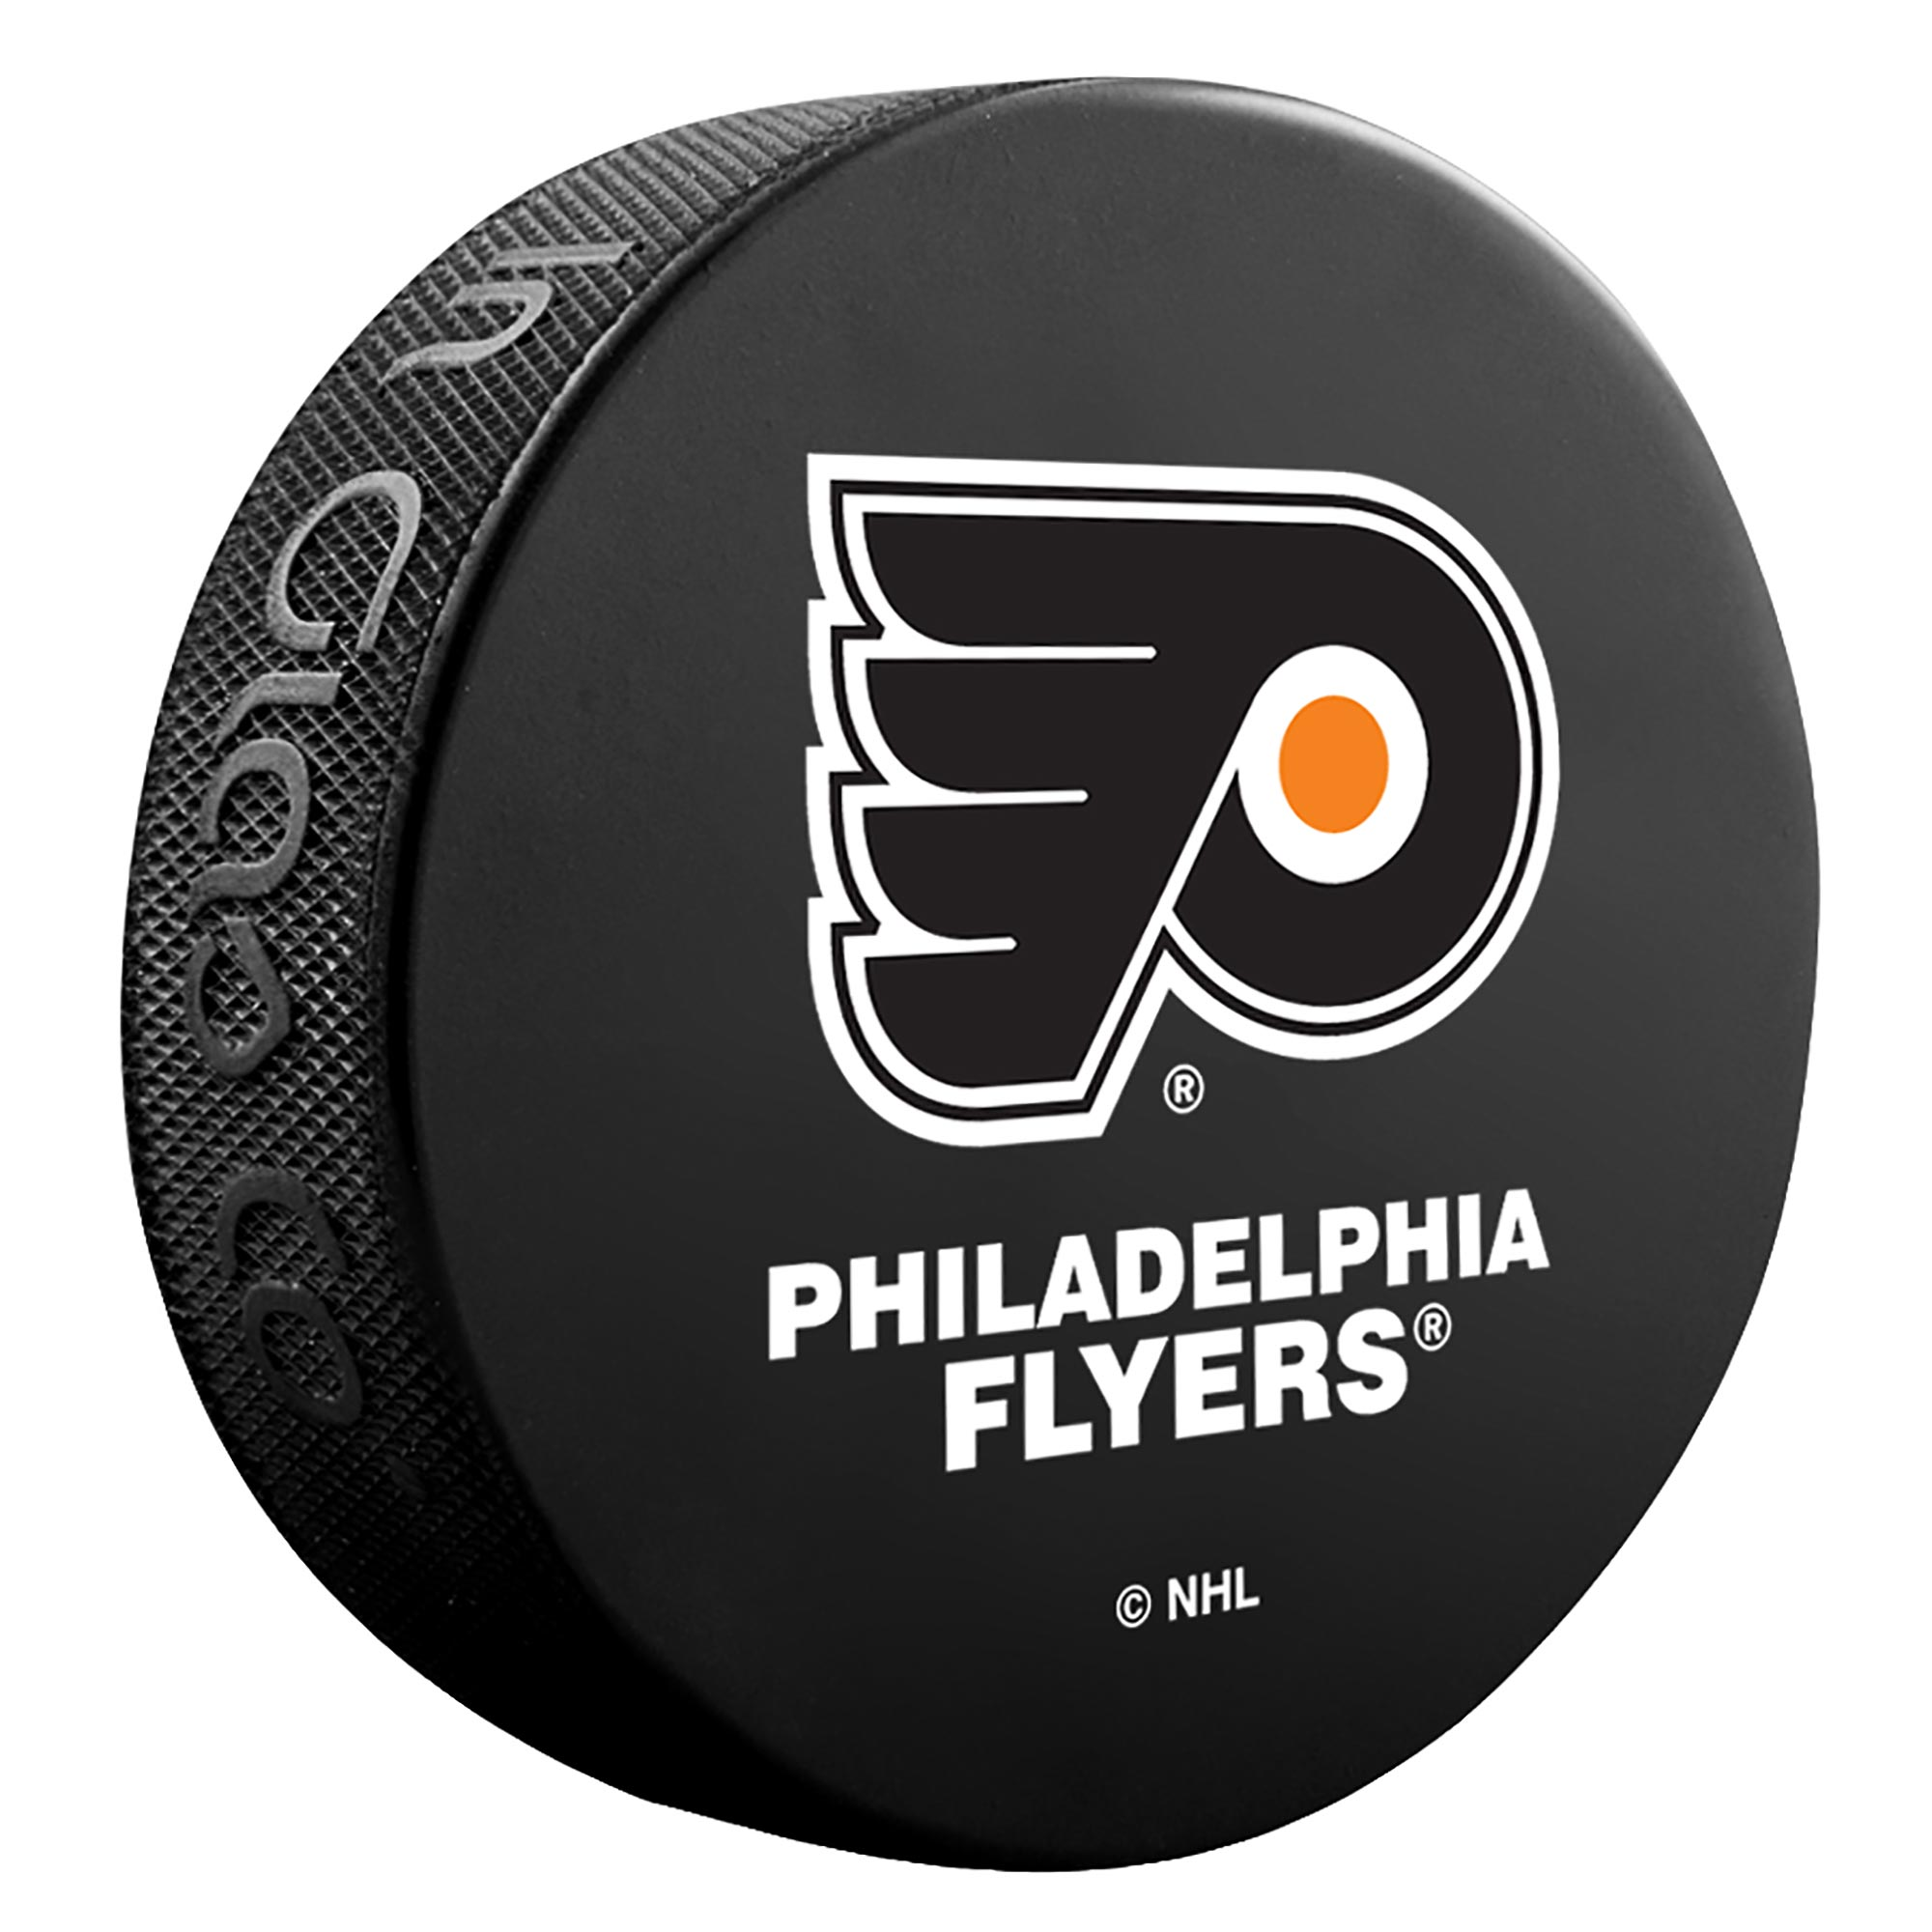 Philadelphia Flyers Team Puck